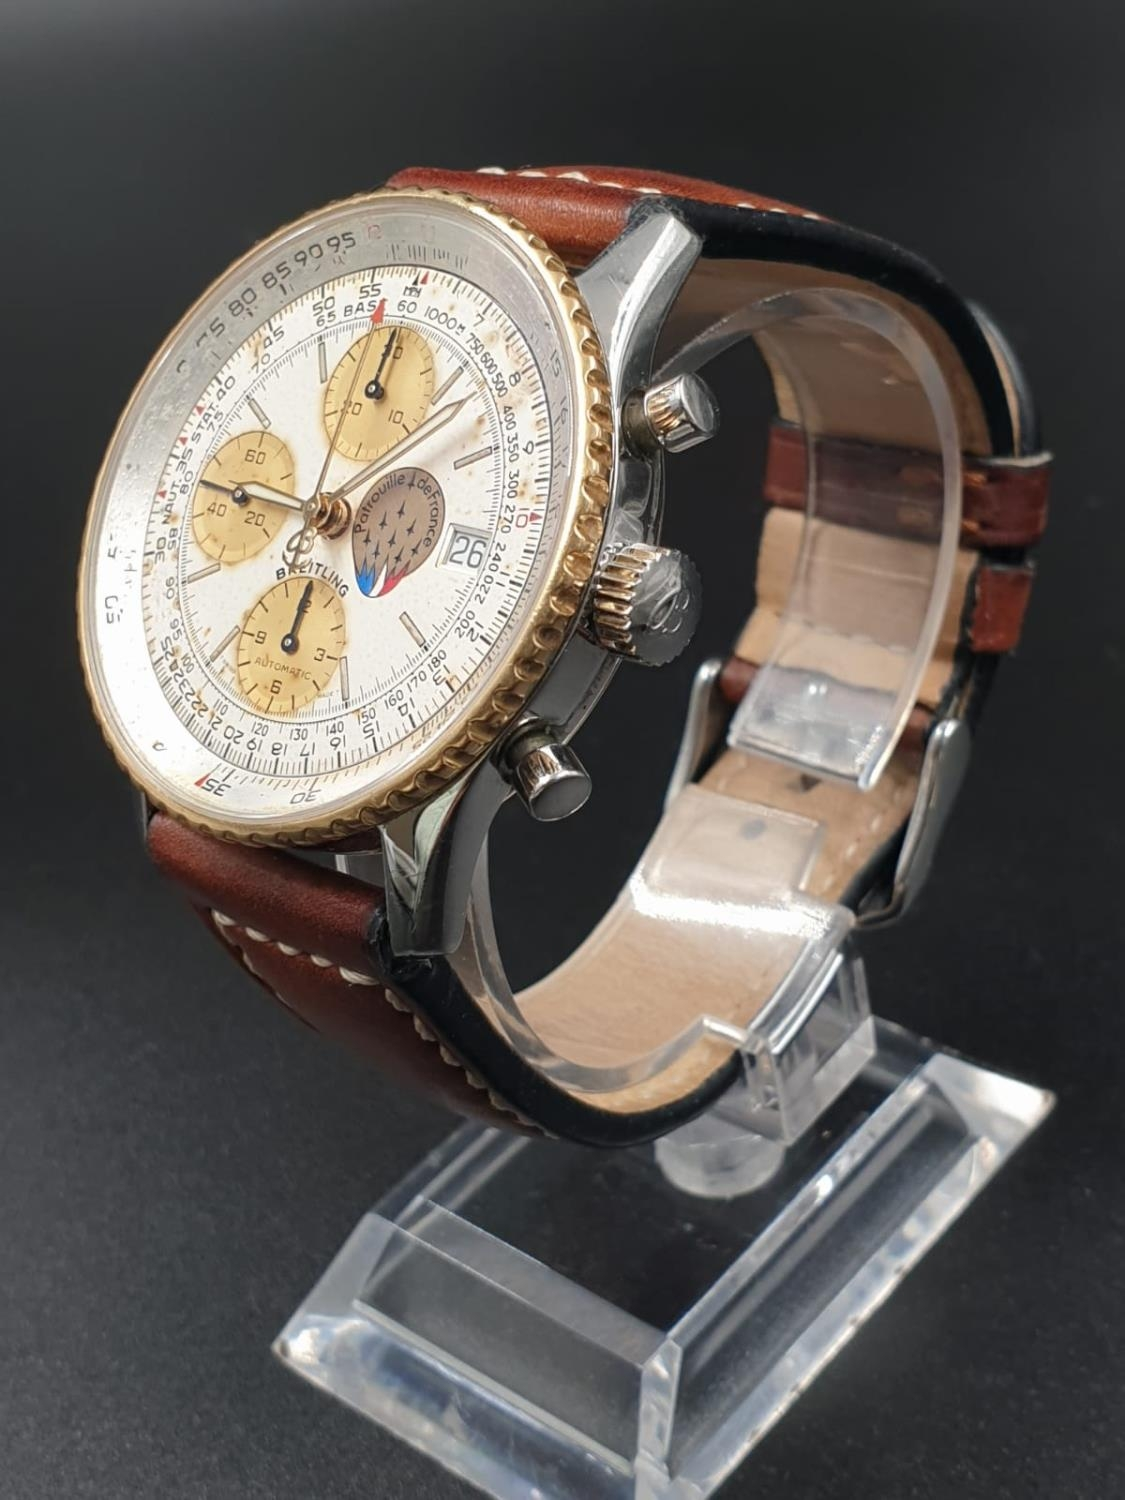 A BREITLING NAVITIMER CHRONOMETER AUTOMATIC MOVEMENT ON A LEATHER STRAP. 42mm - Image 2 of 10